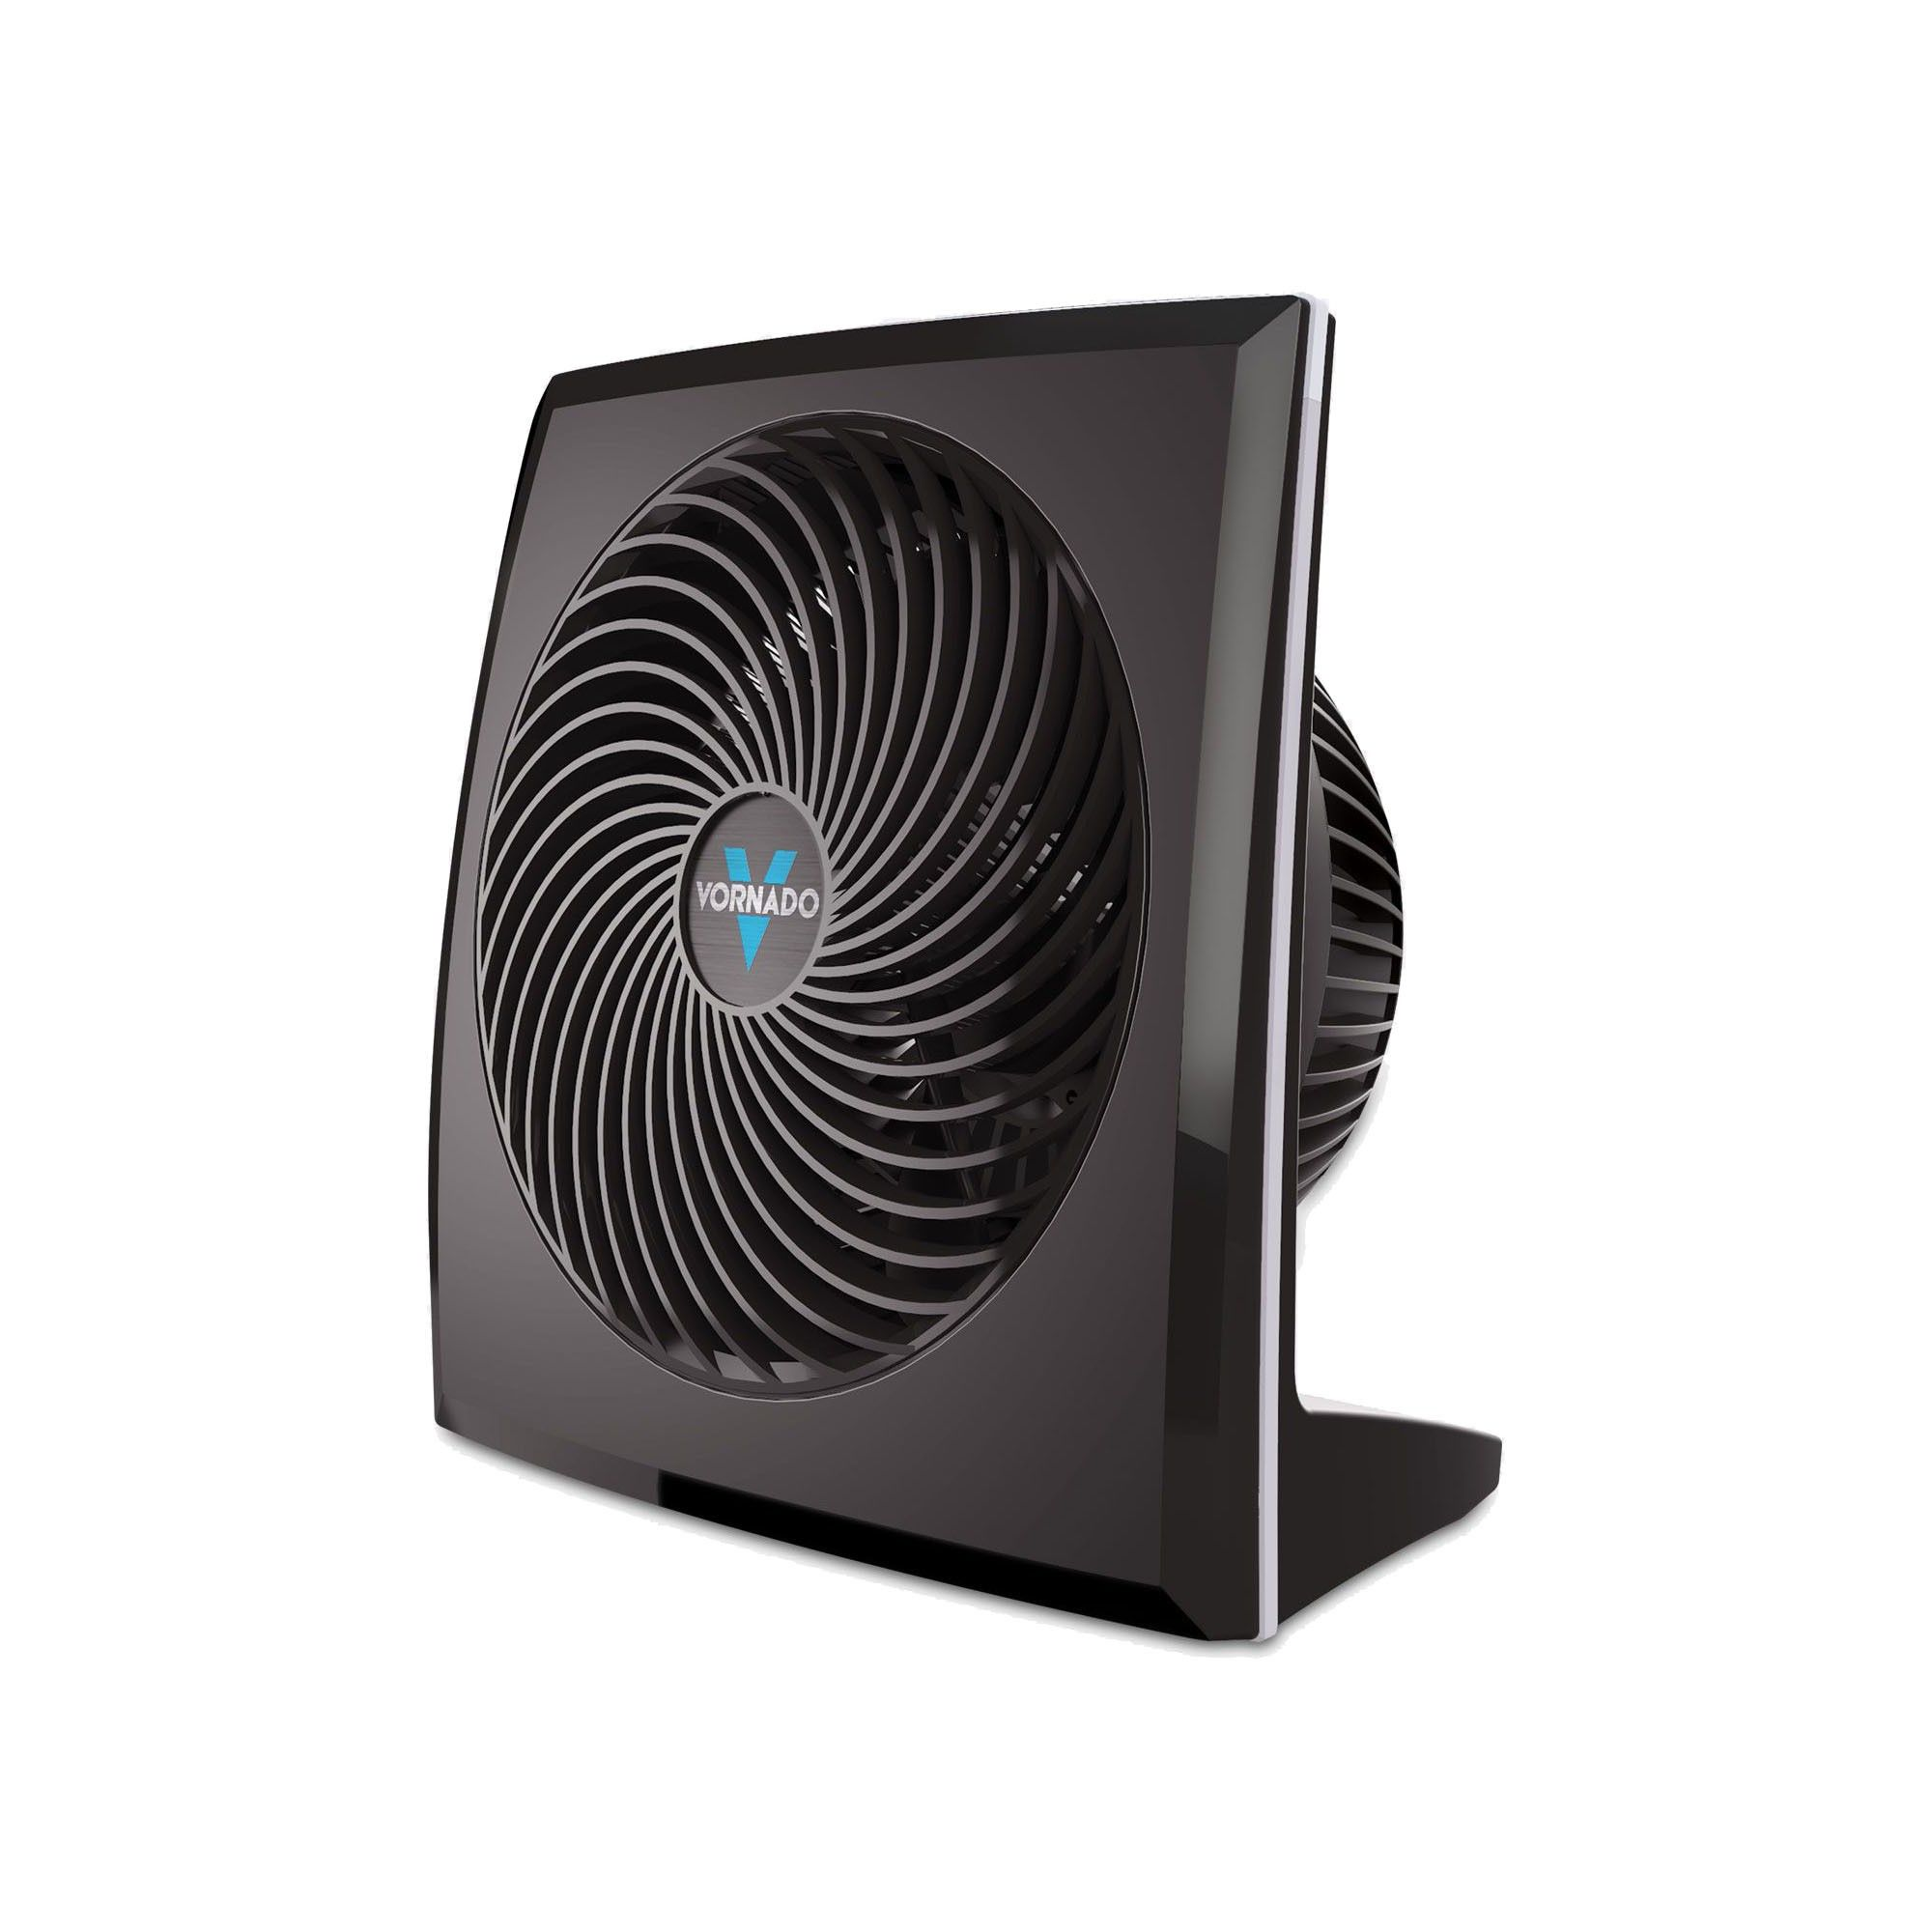 Vornado 673 Portable Medium Quiet Control Flat Panel Air